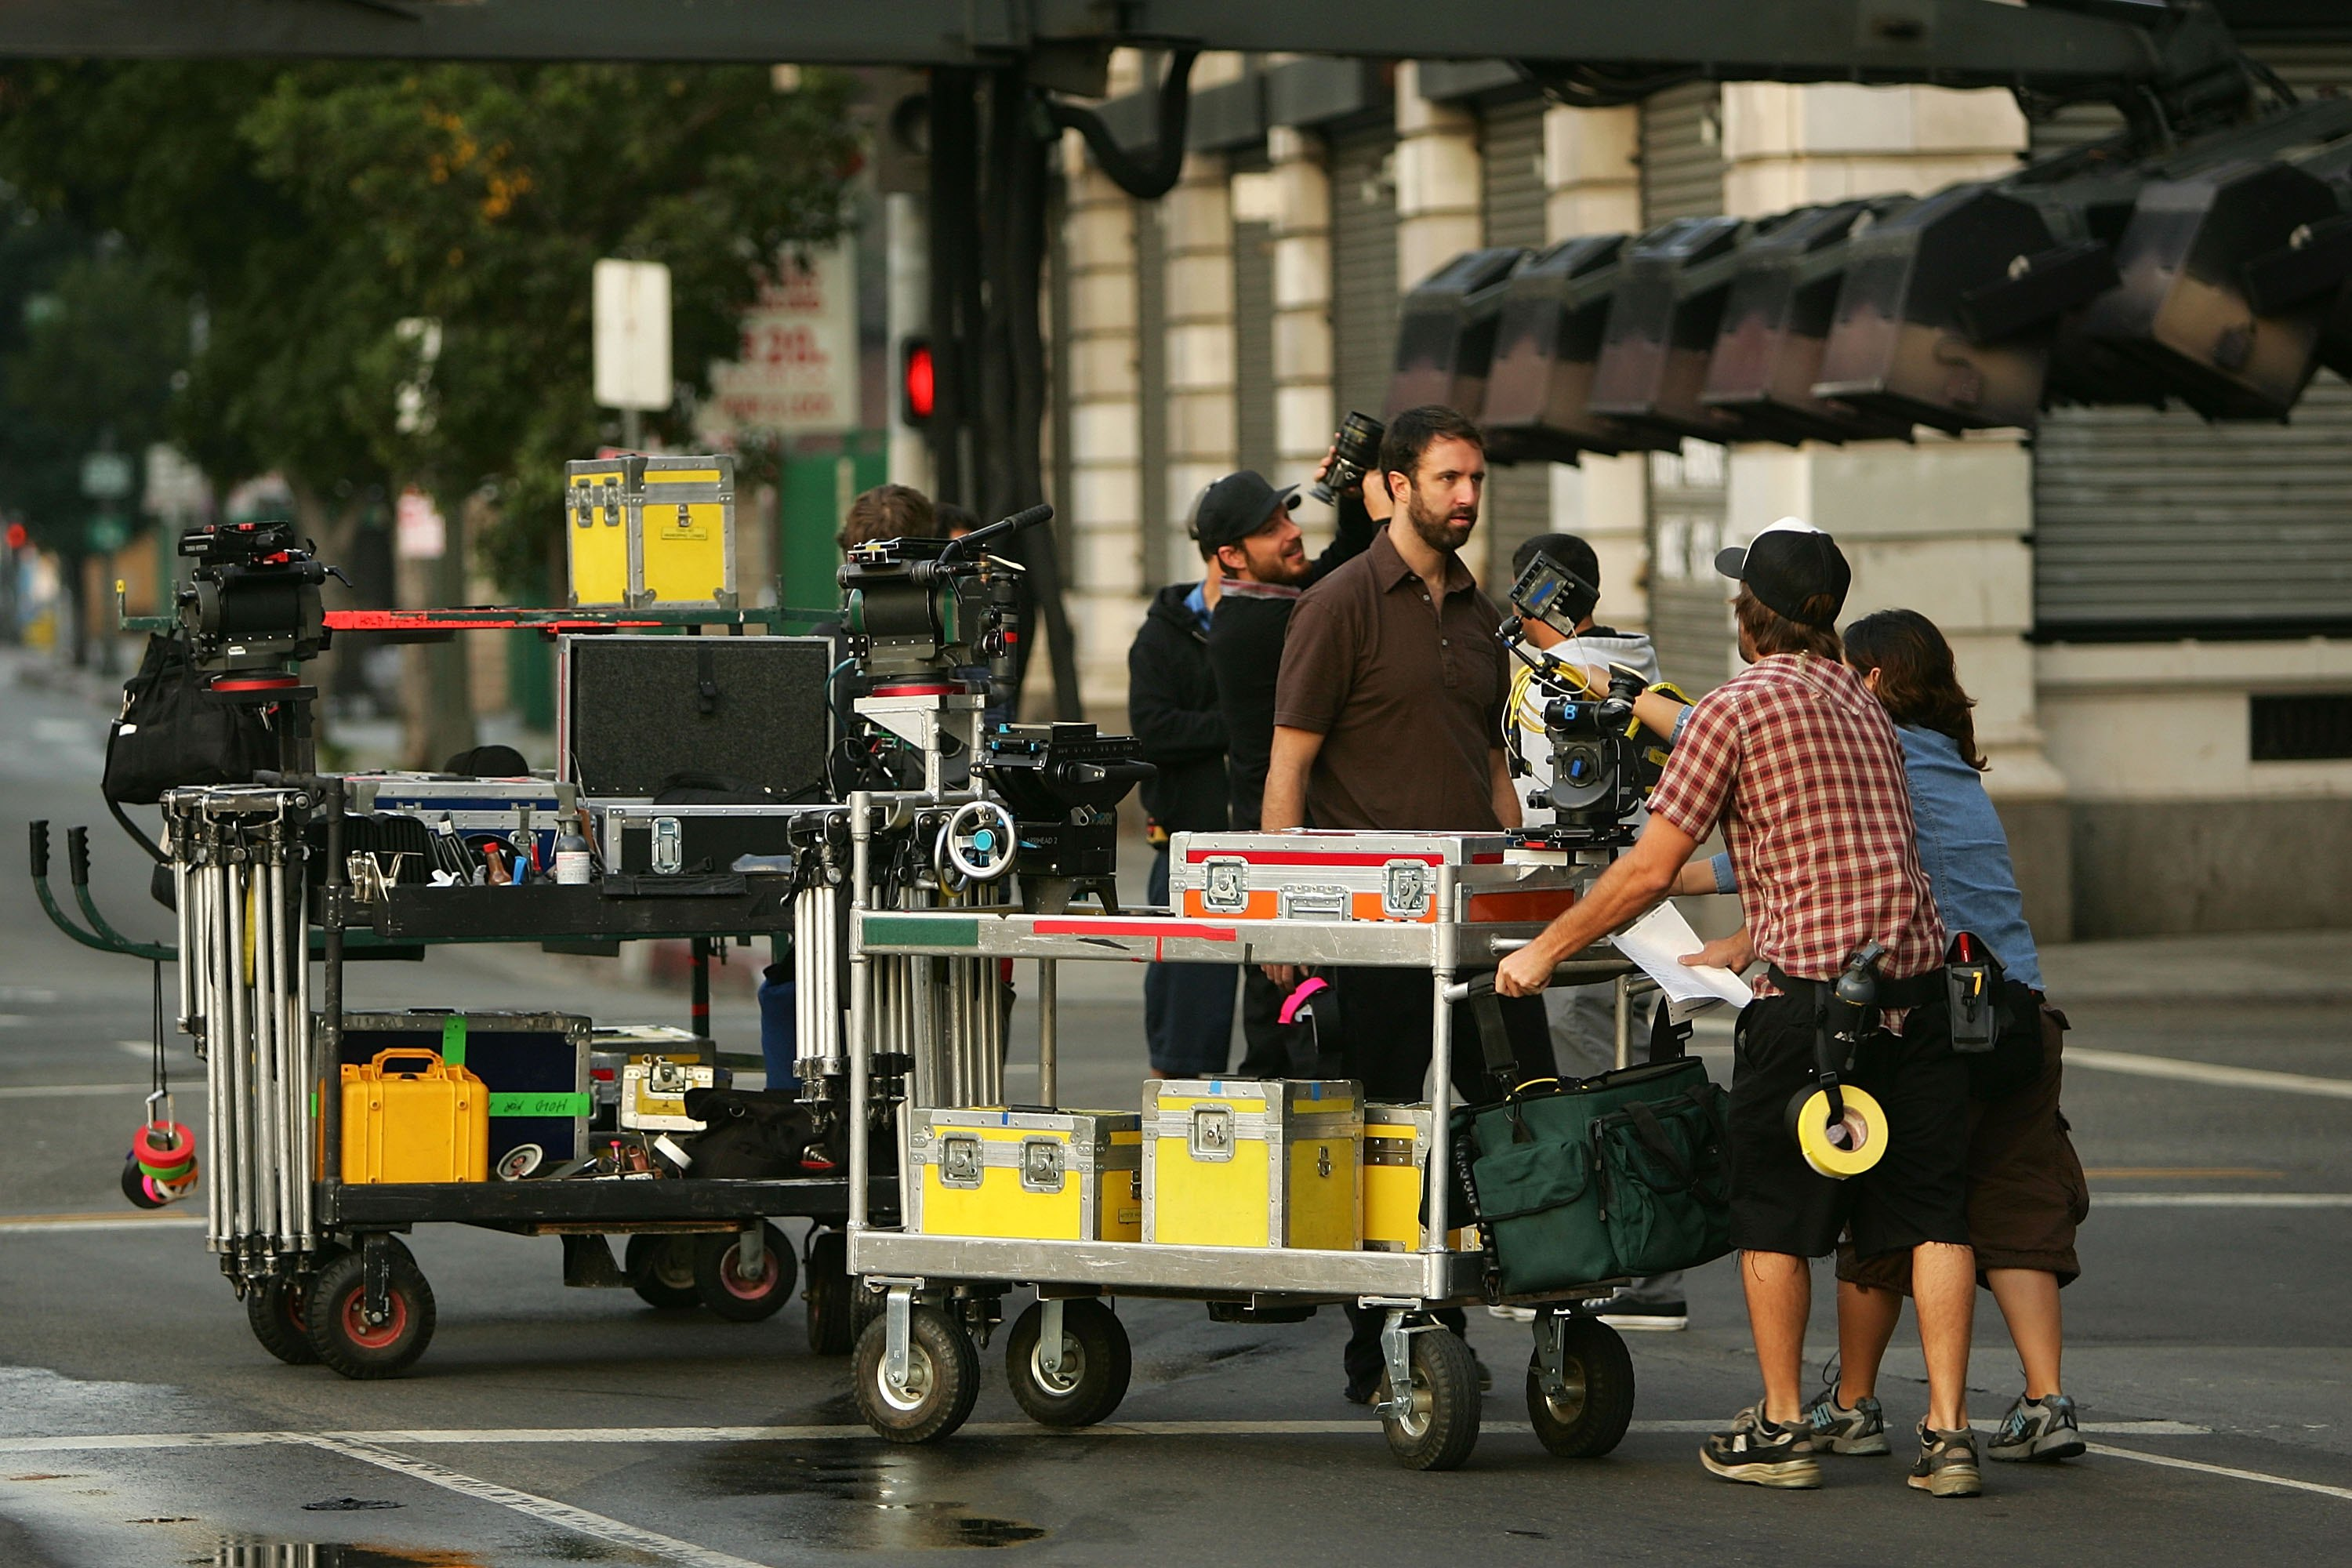 A crew sets up cameras for the filming a mobile phone commercial on-location in Los Angeles, California. (Photo by David McNew/Getty Images)